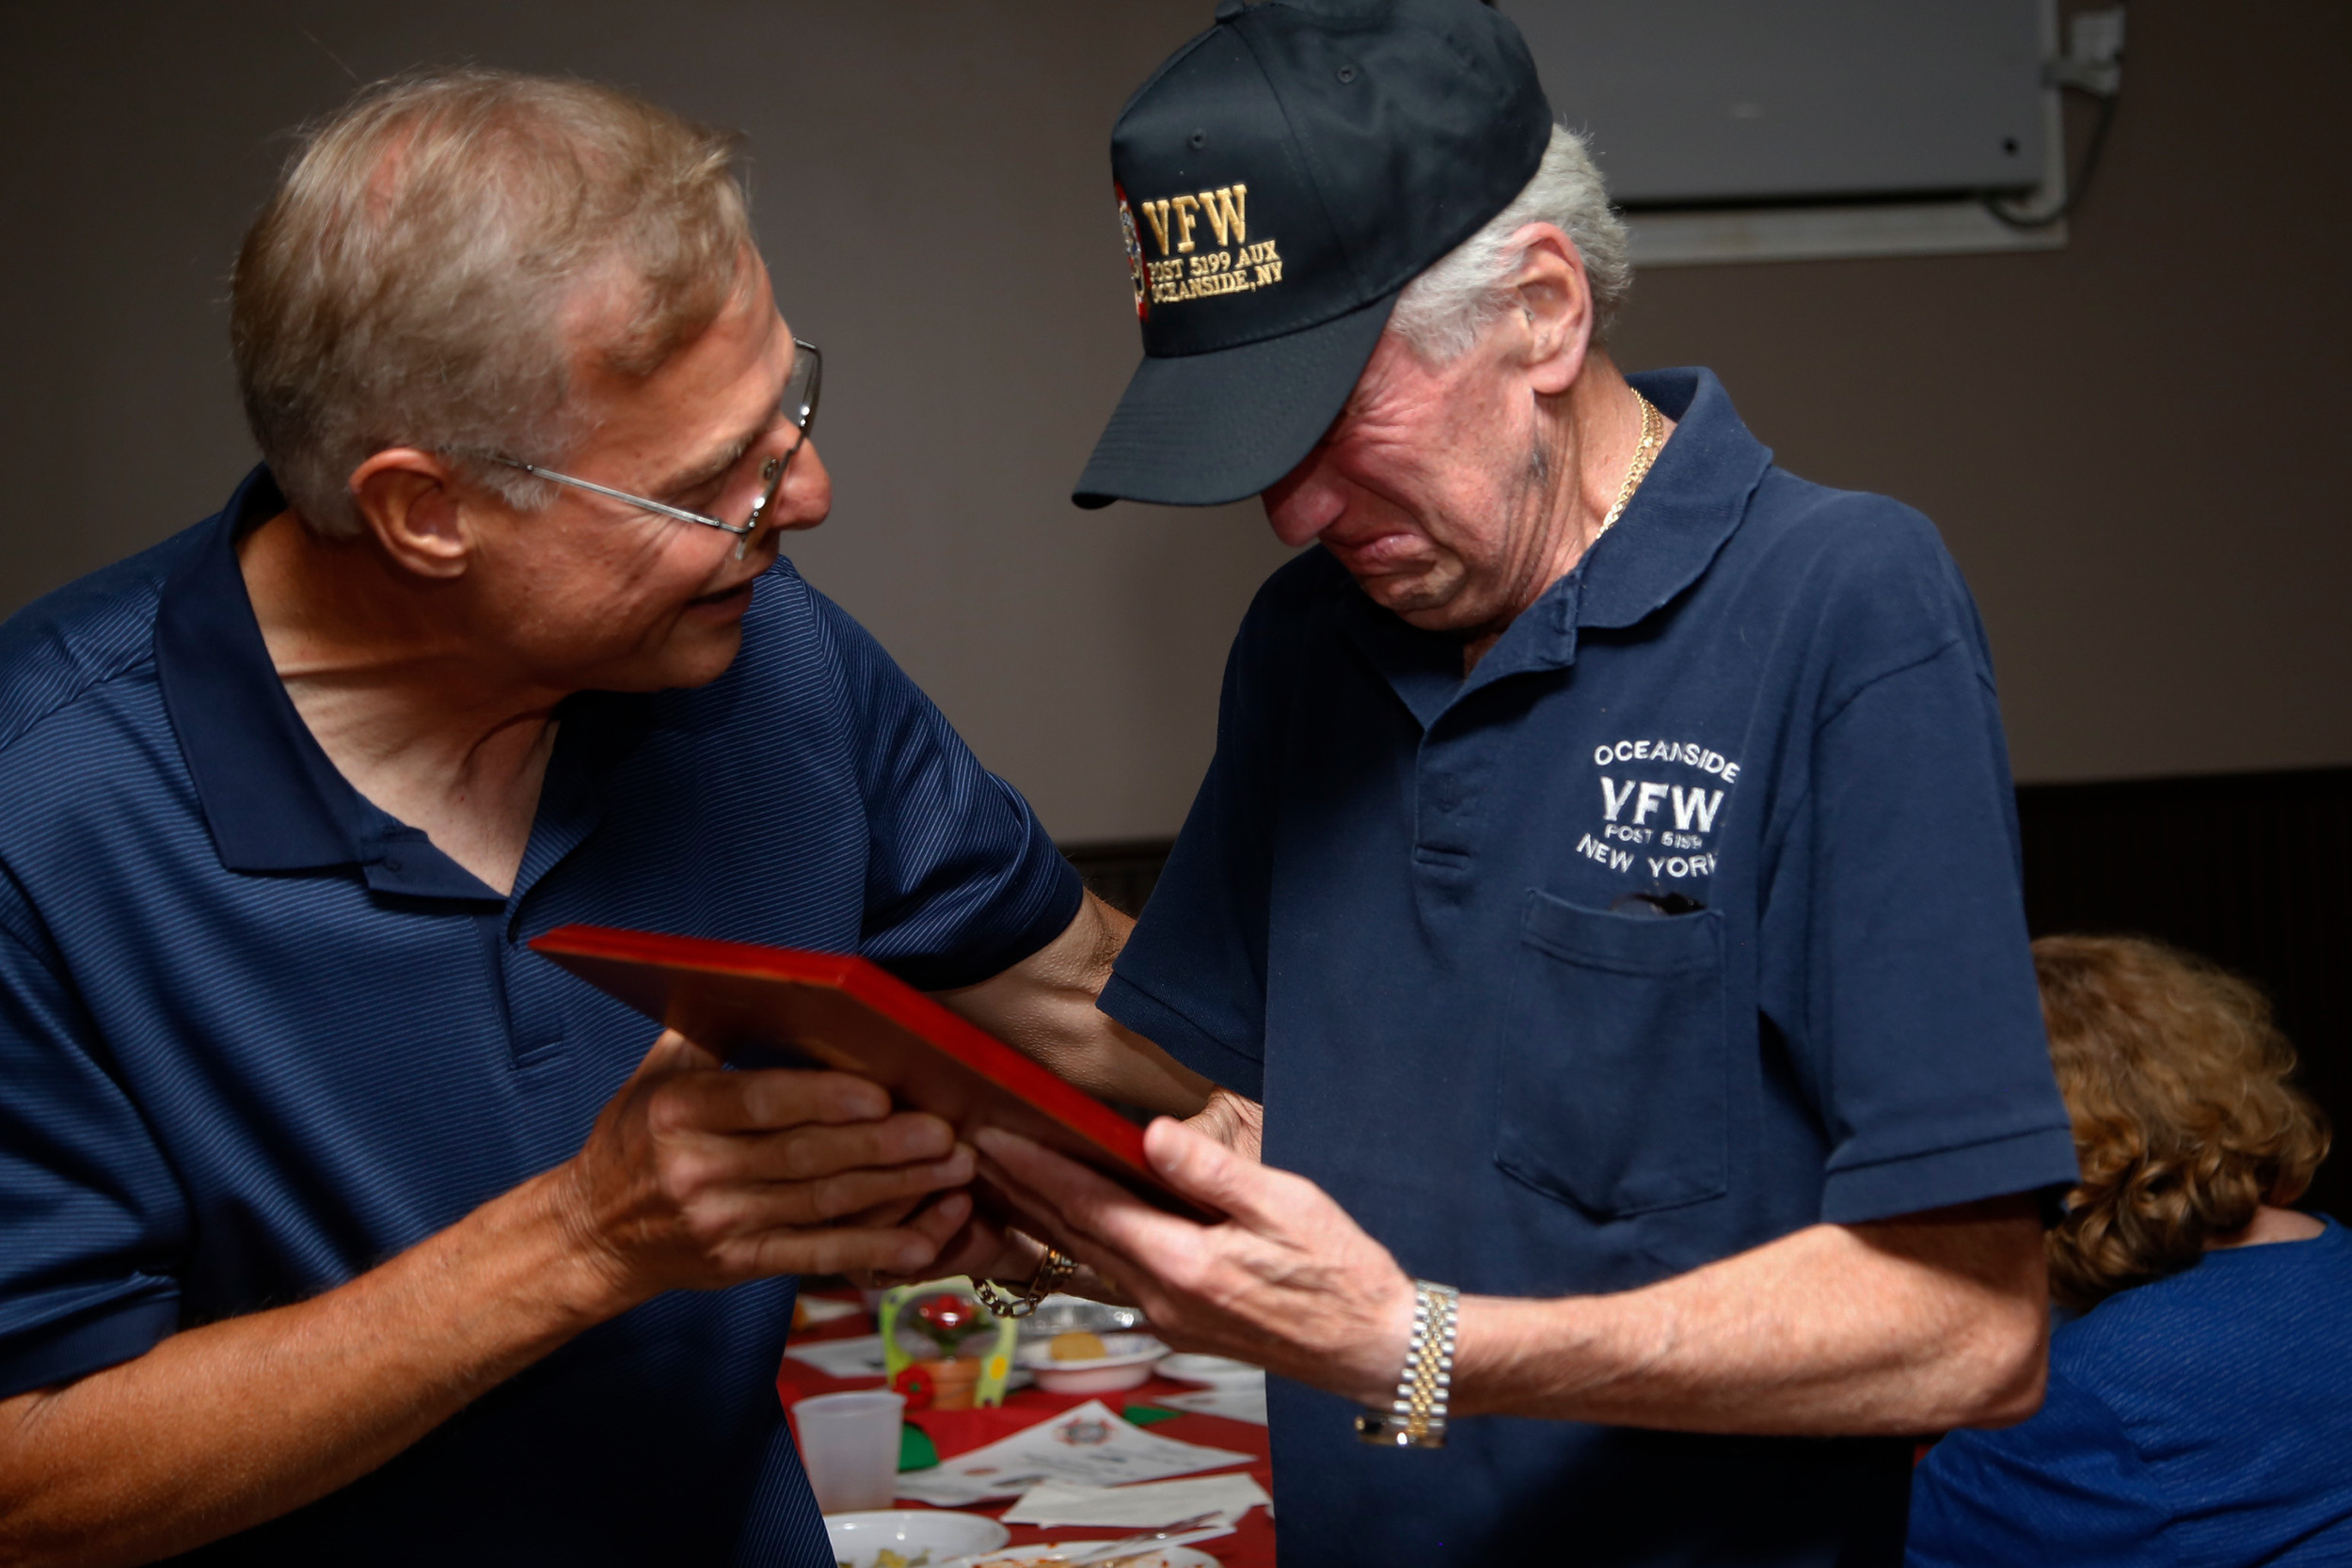 Kiesche, right, became emotional when he was surprised with an award on Aug. 13 honoring his decades of charity and community service supporting local veterans.